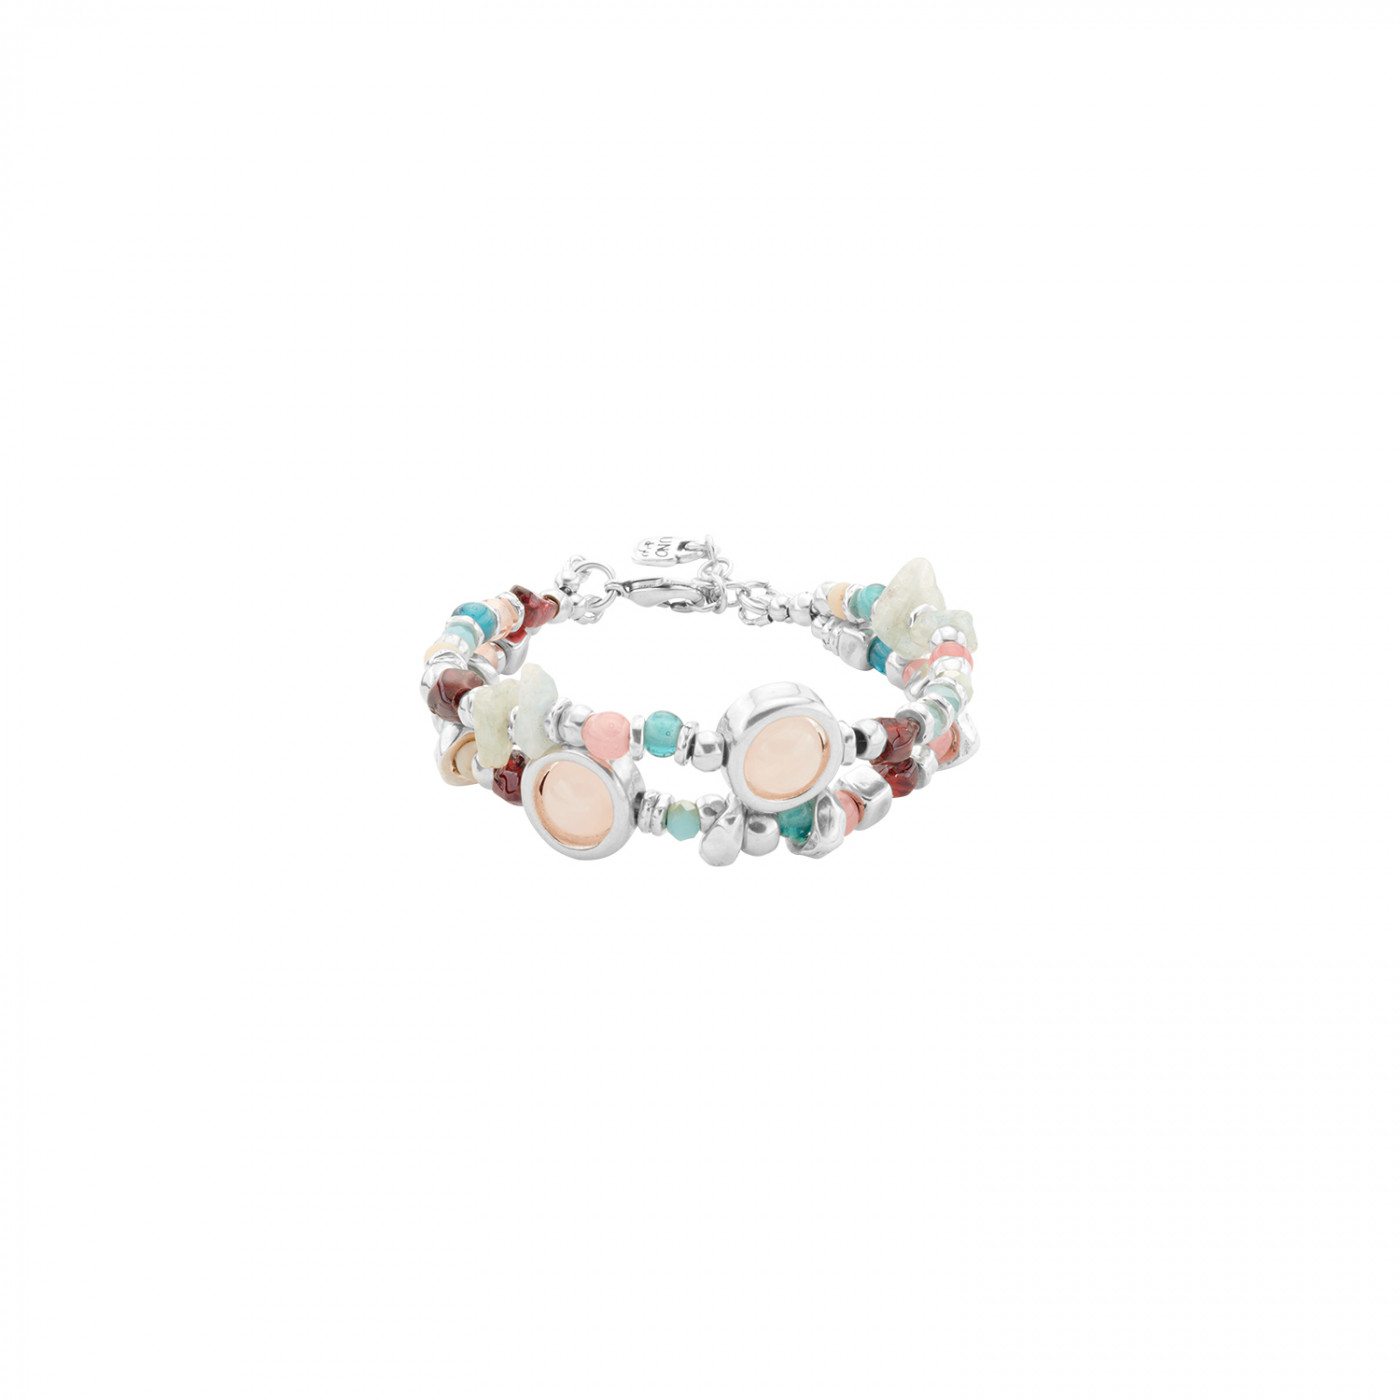 UNO DE 50 Bracelet alloy silver with natural stones Ref. PUL1847MCLMTLOM